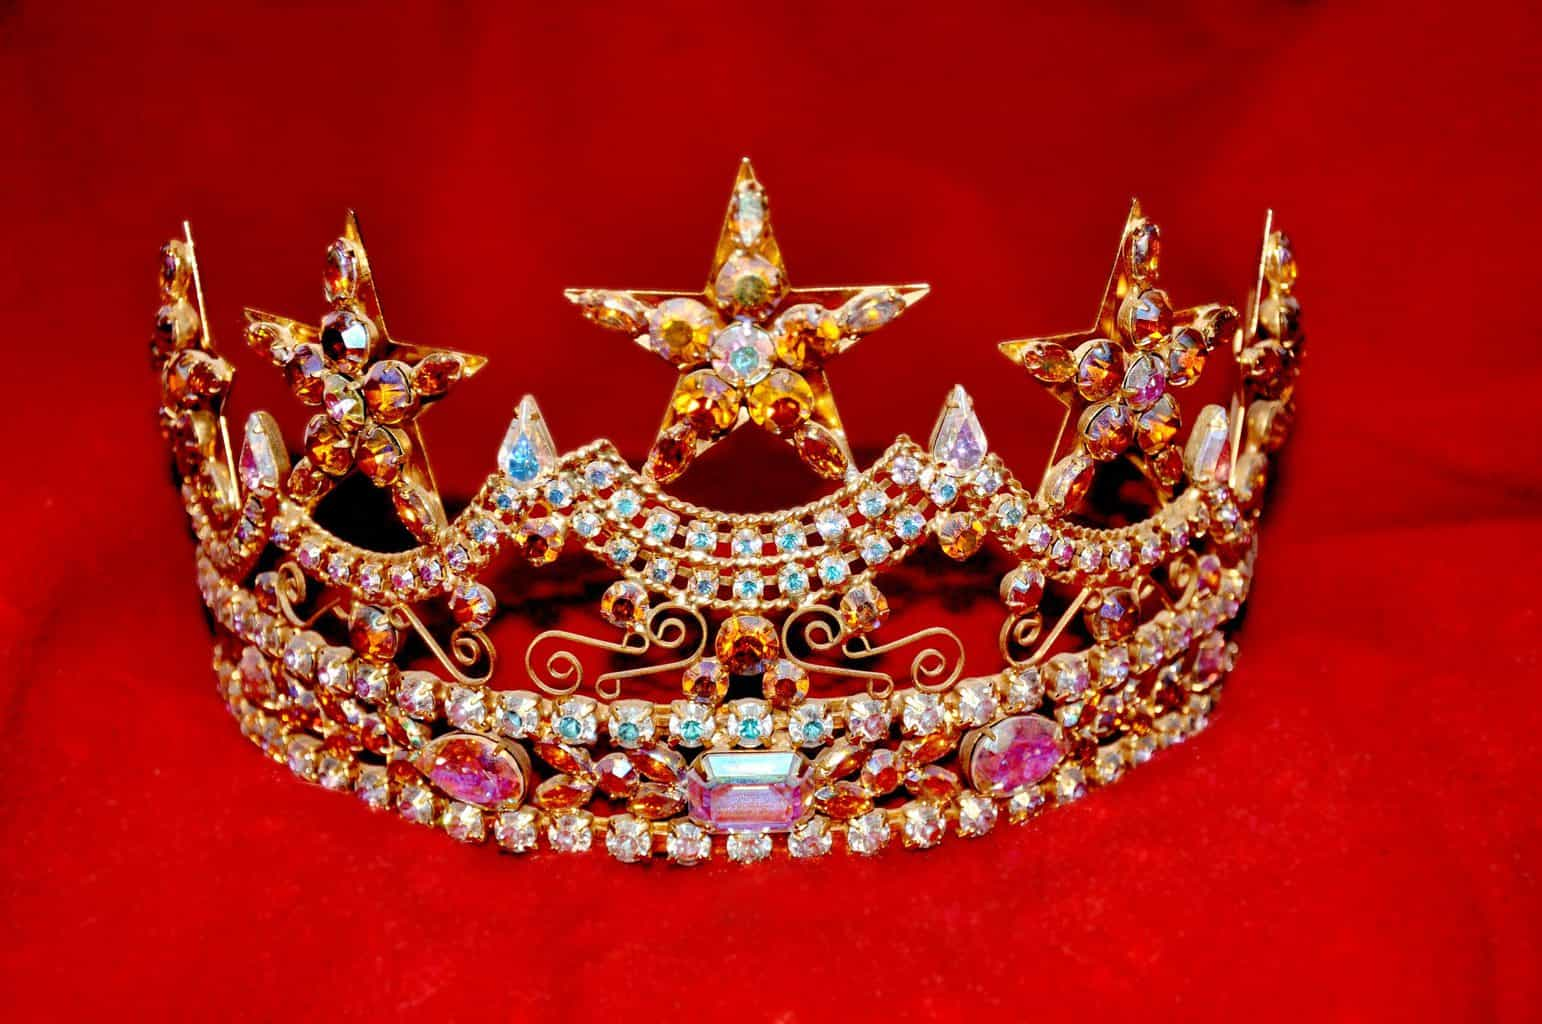 A crown with different rhinestones attached